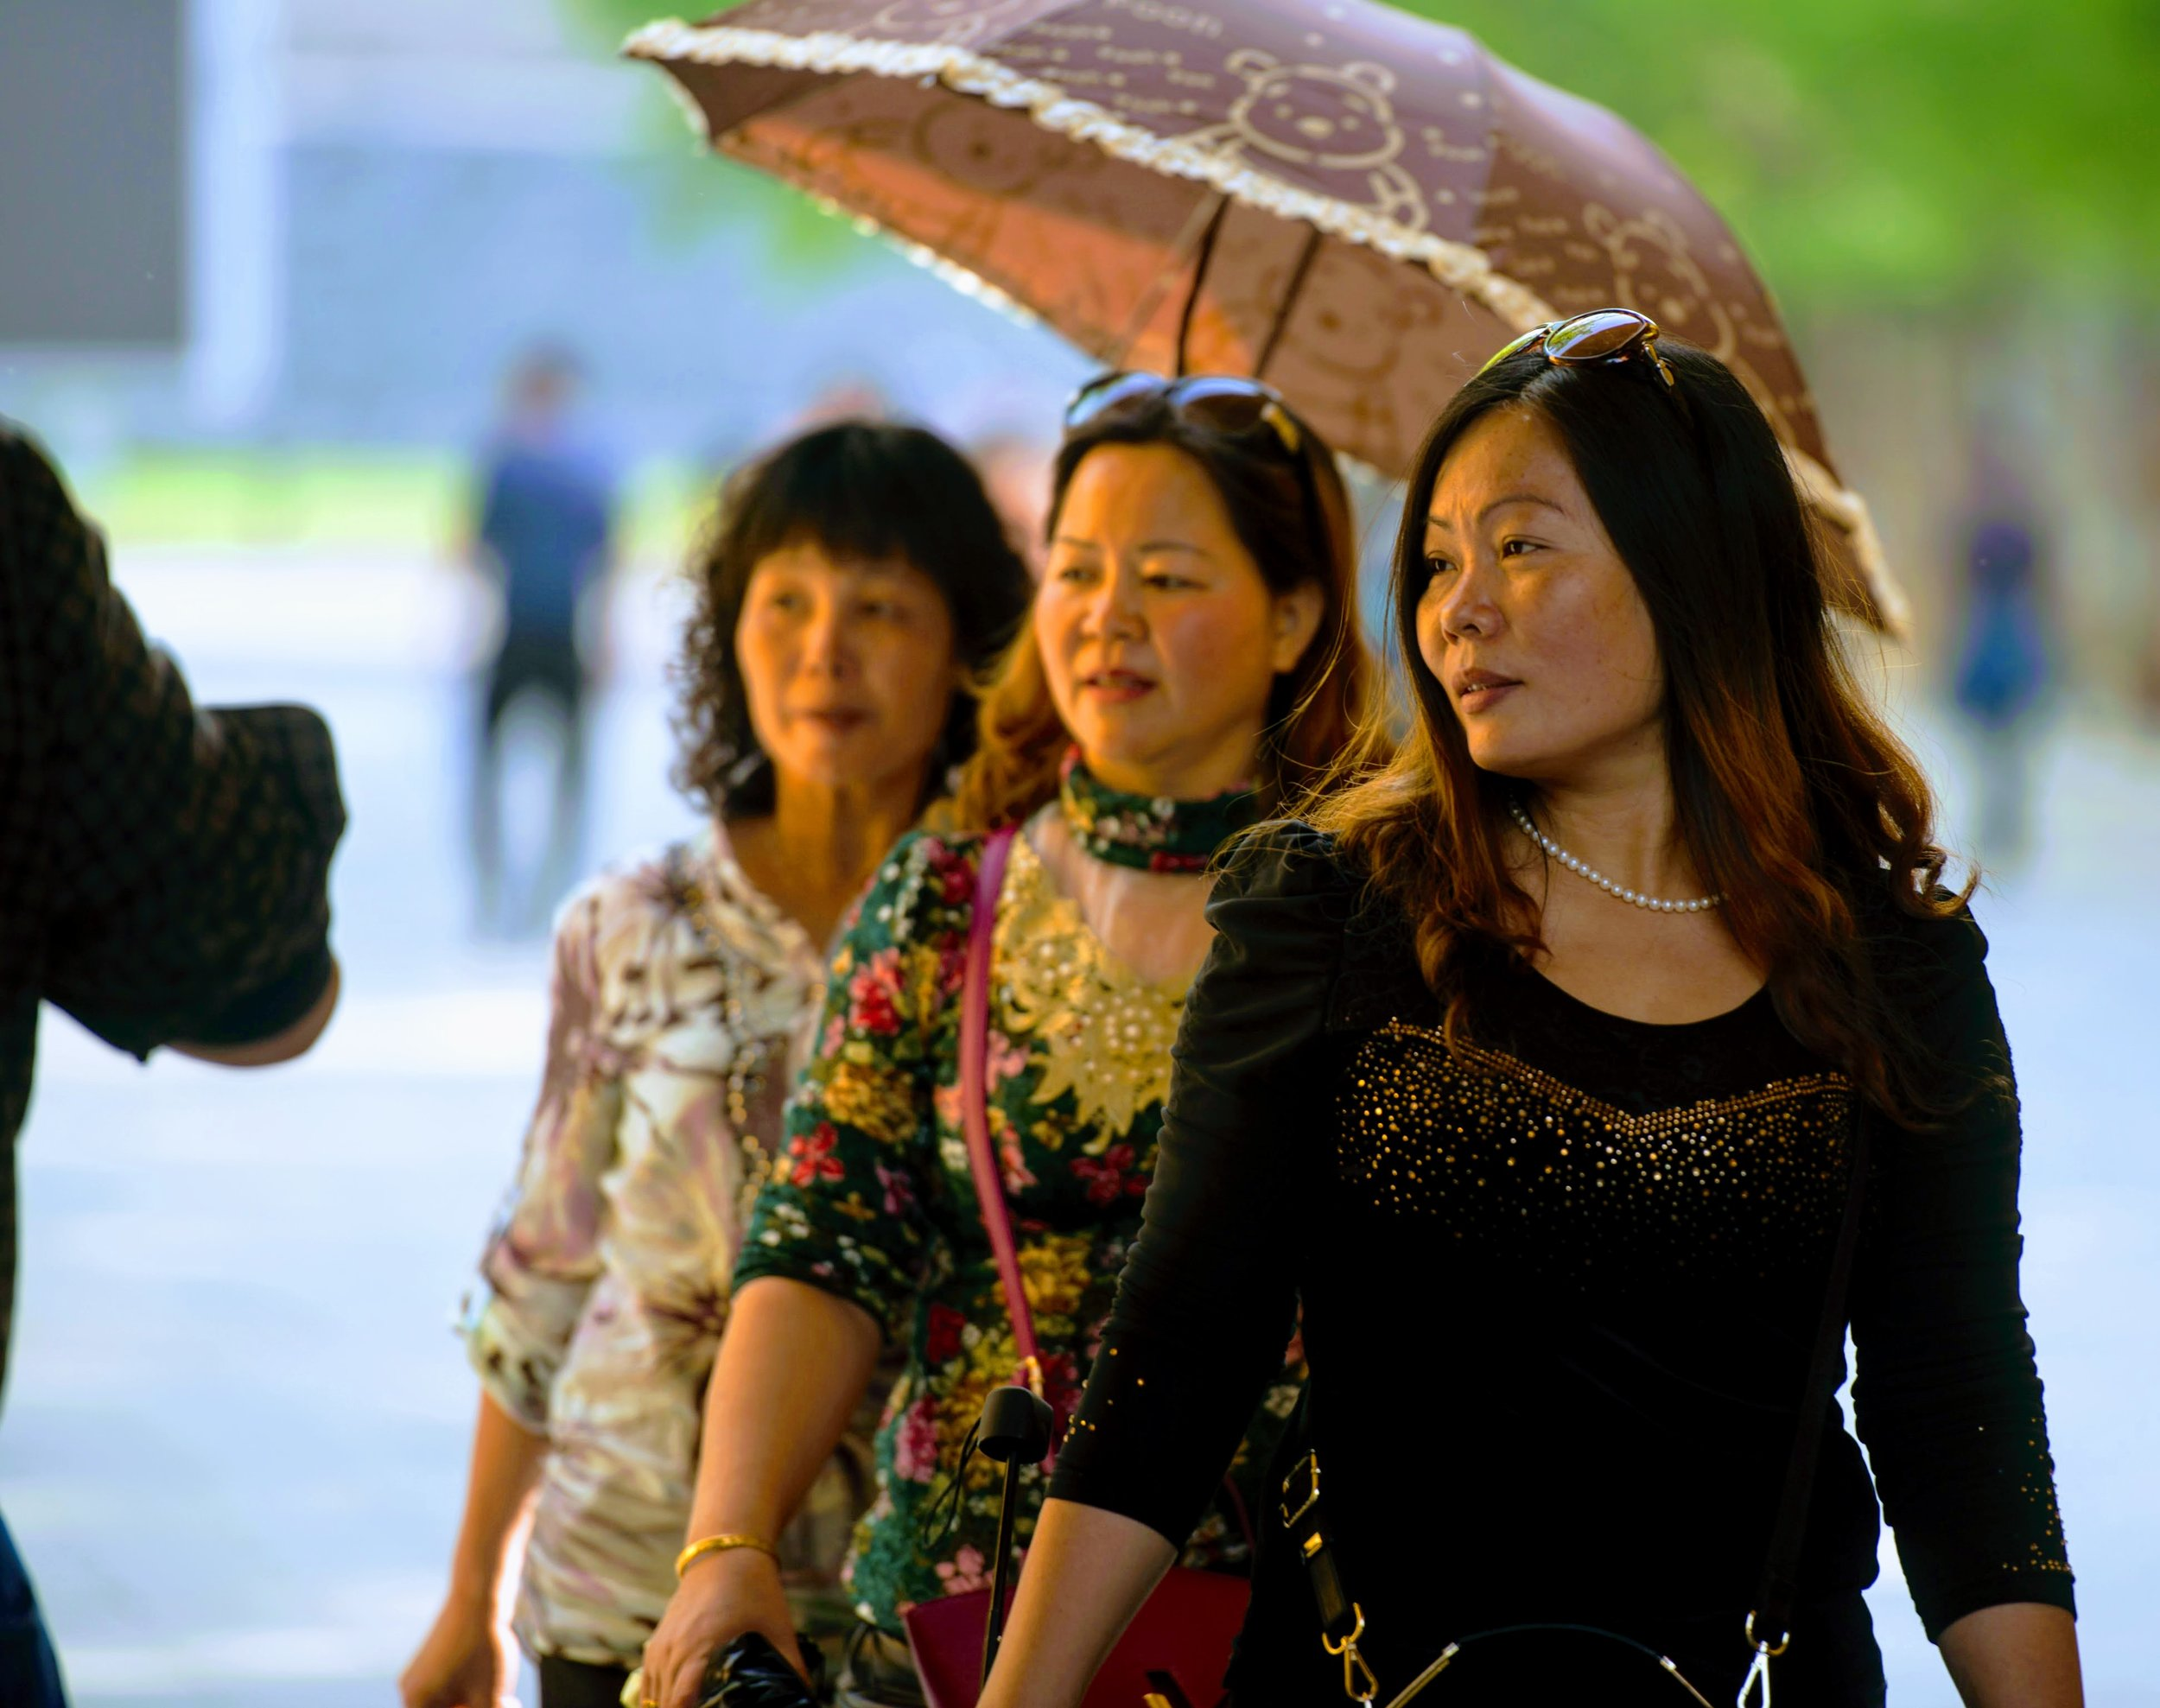 Chinese women walk past a street musician while taking a stroll in Beijing, China.